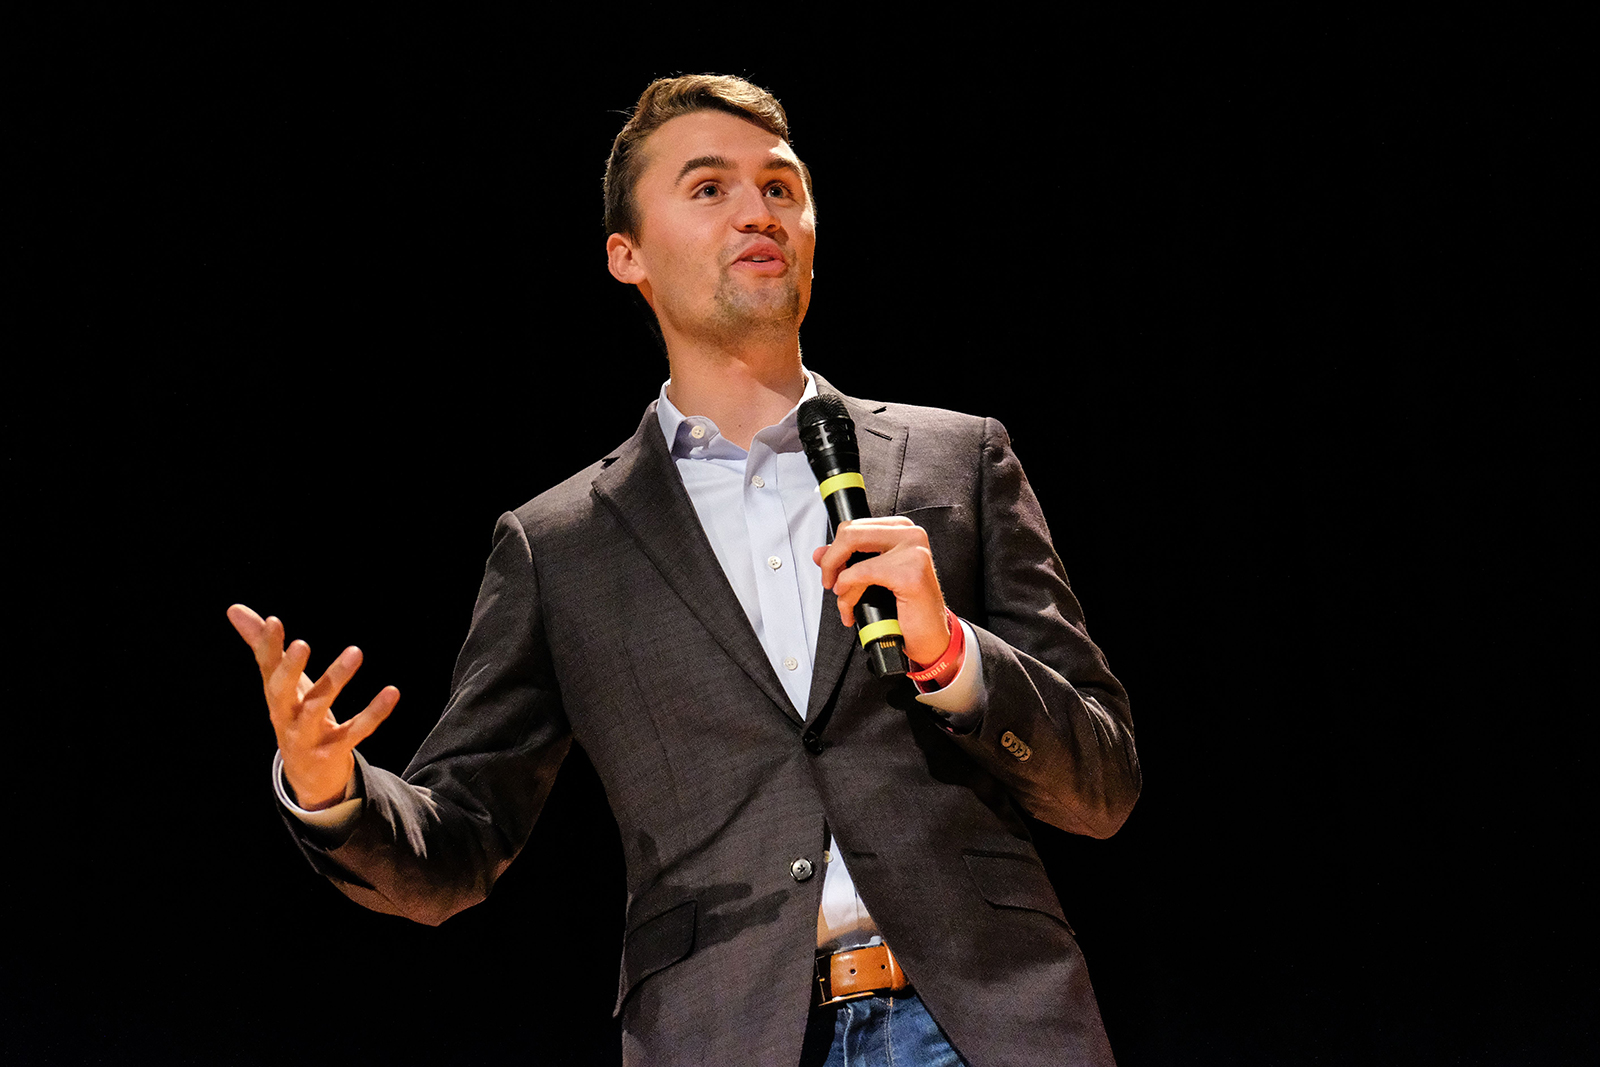 Charlie Kirk speaks at Culture War Turning Point USA event at the Ohio State University in Columbus, Ohio, on October 29, 2019.